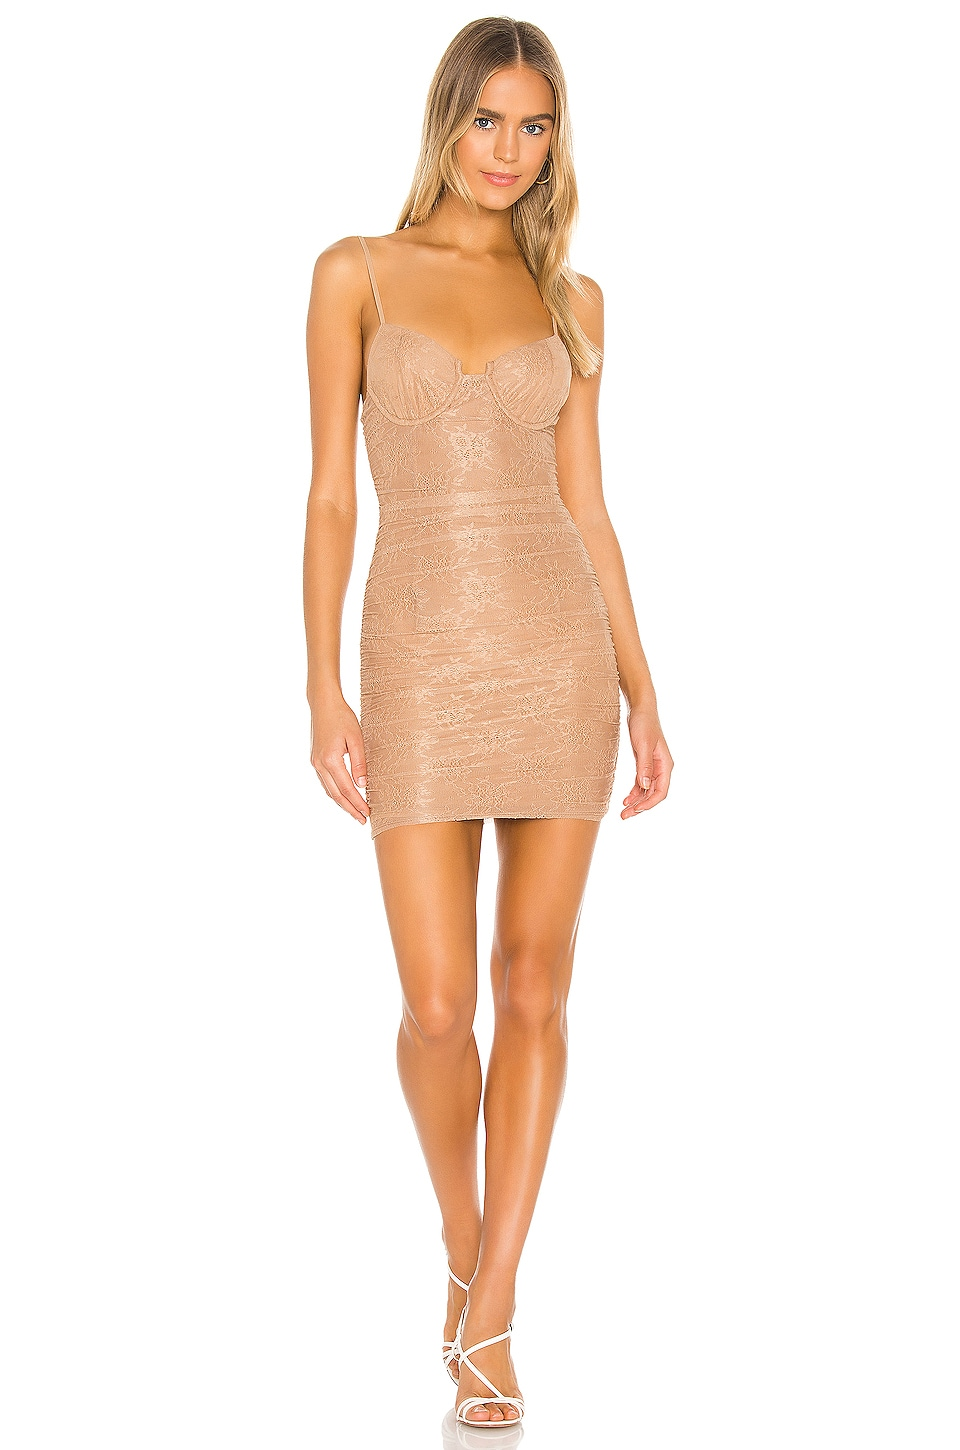 Sierra Mini Dress             Camila Coelho                                                                                                       CA$ 259.13 18